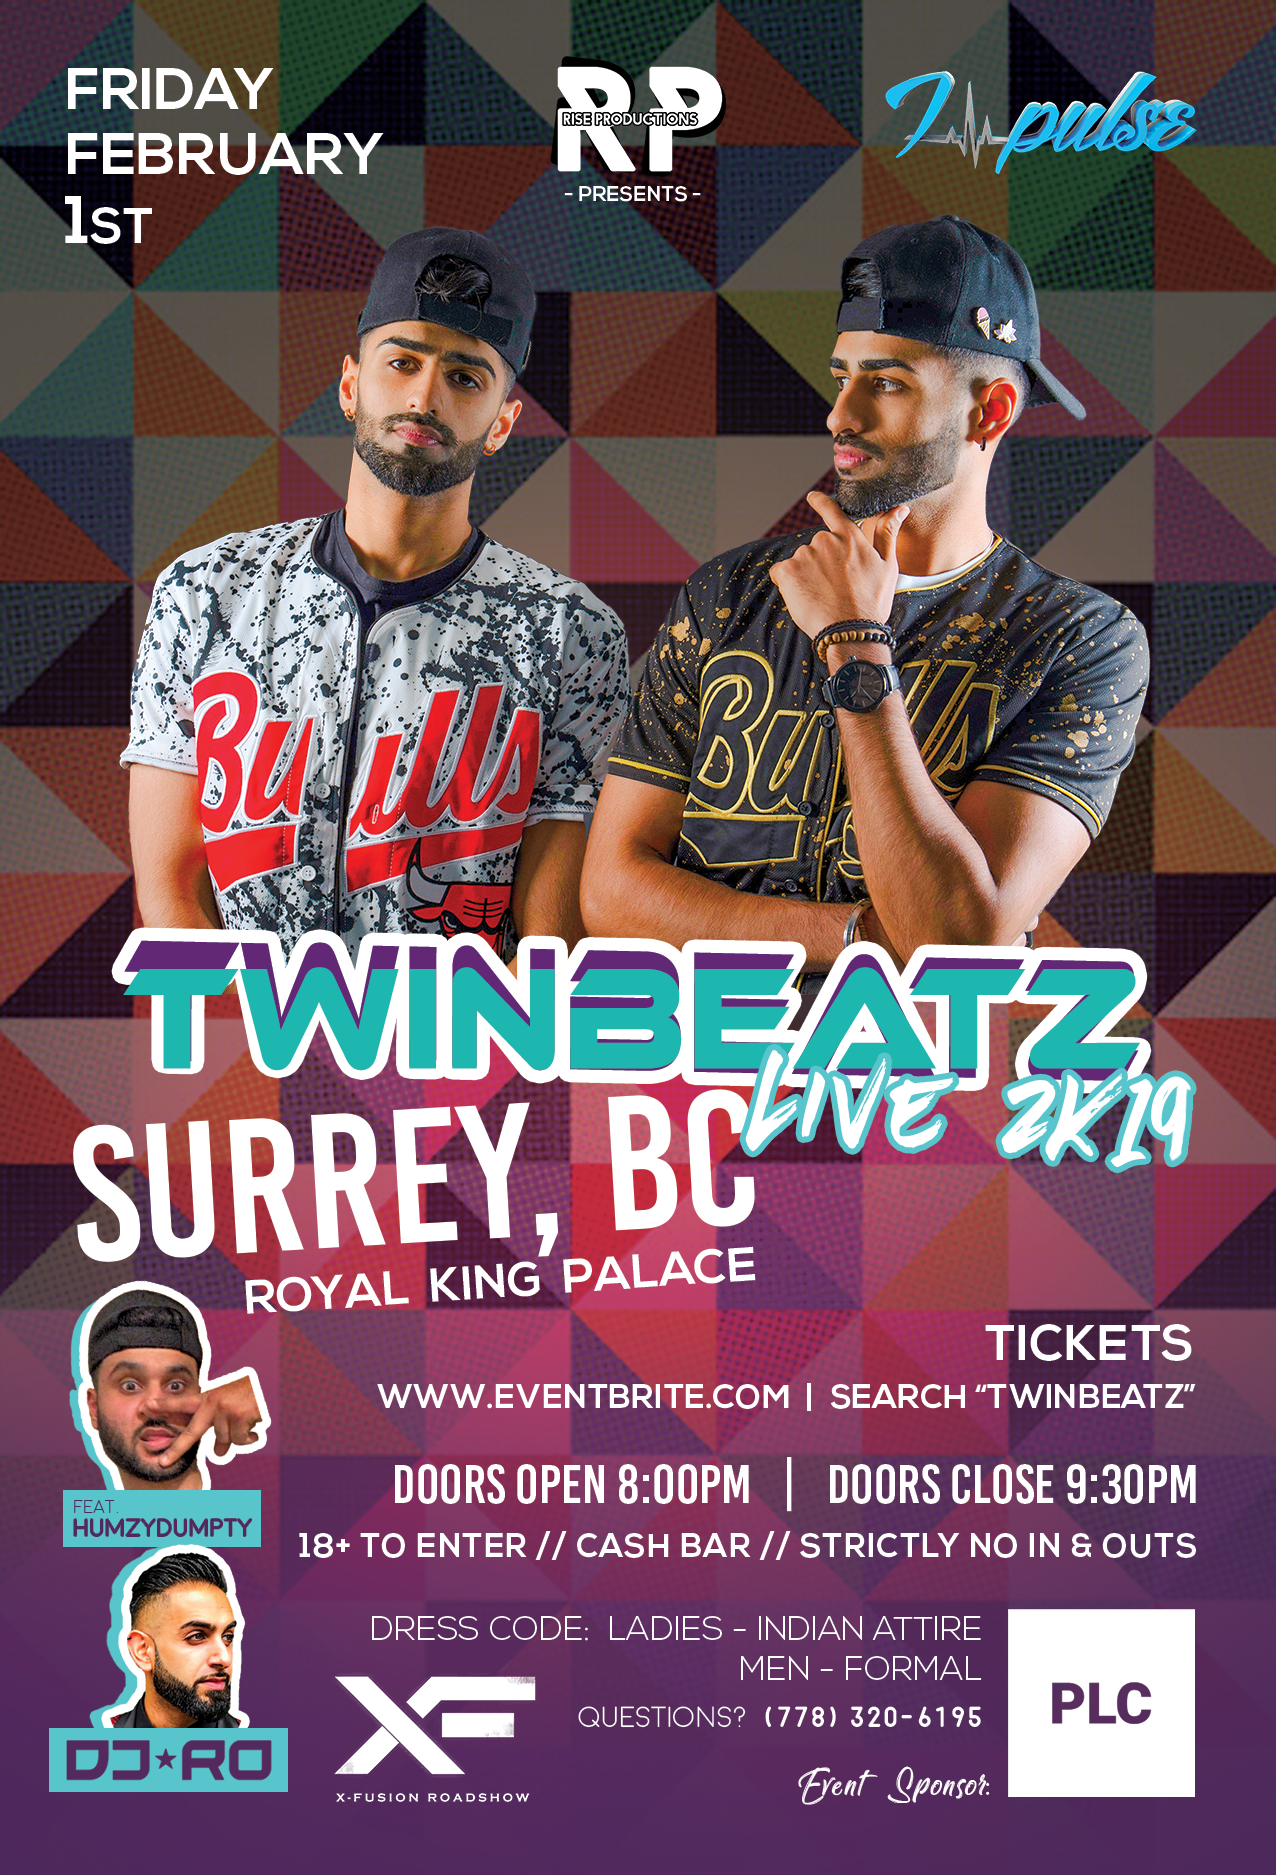 Twinbeatz Live 2k19 at Surrey, BC